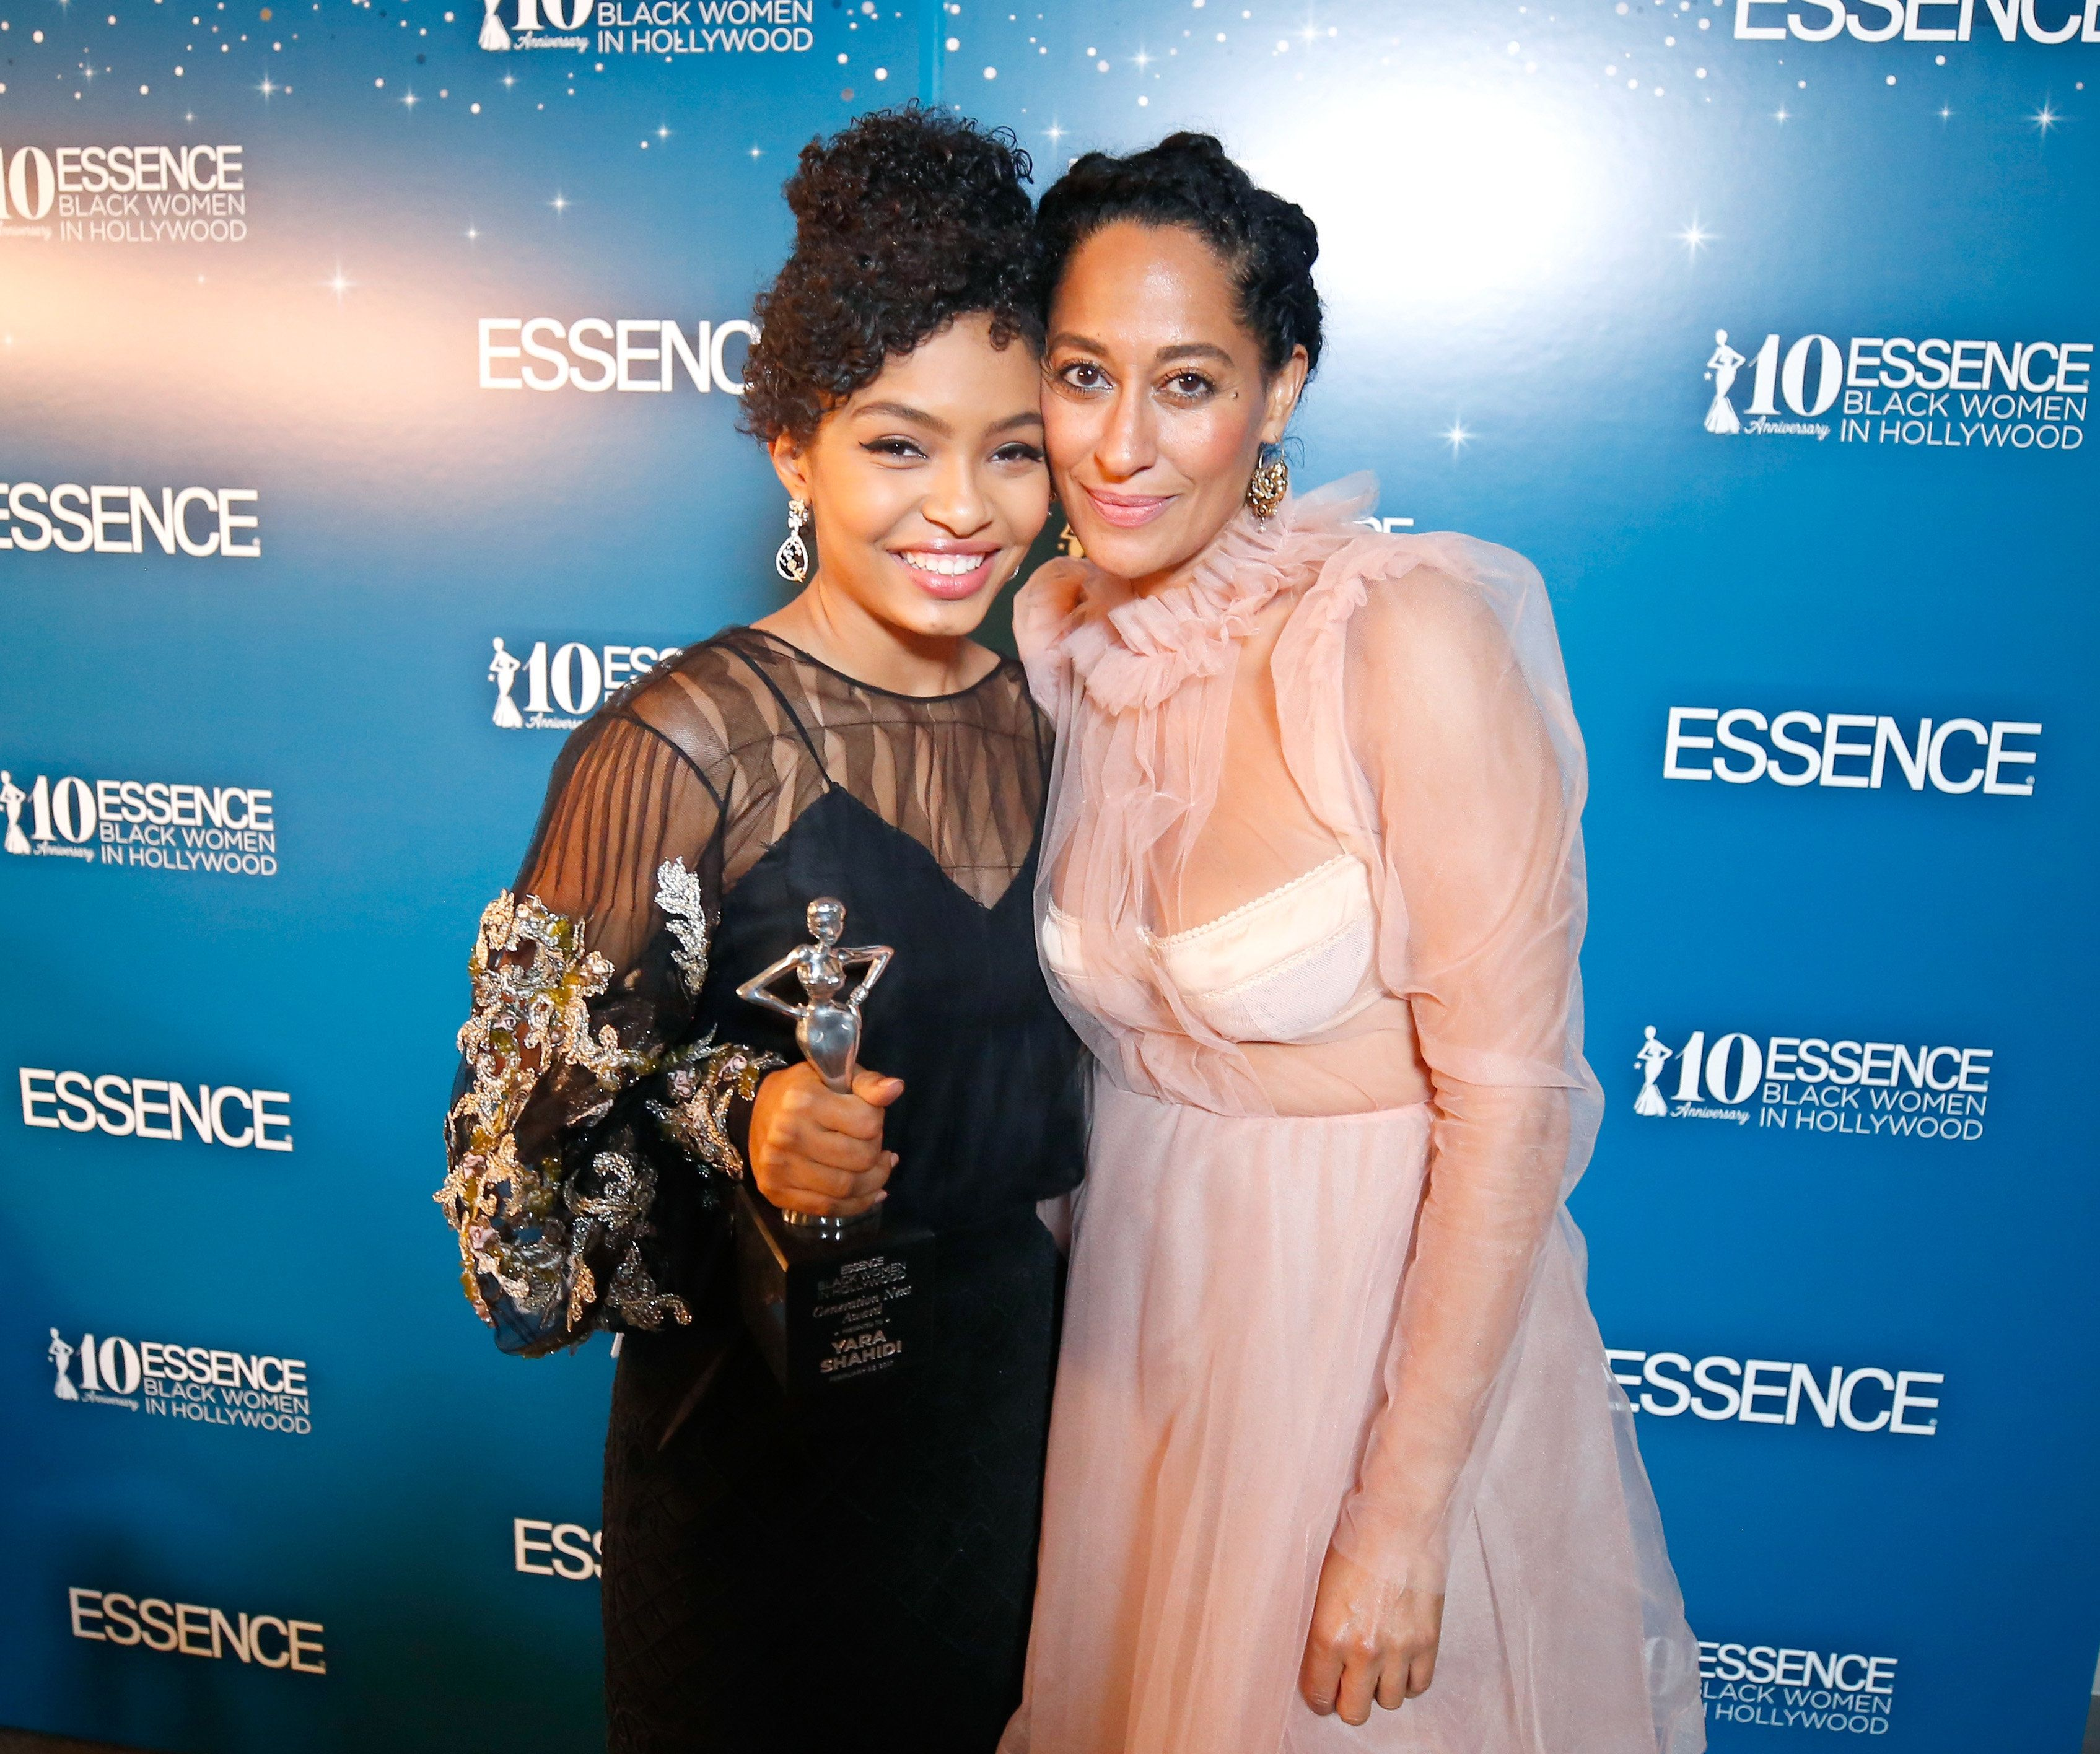 BEVERLY HILLS, CA - FEBRUARY 23:  Honoree Yara Shahidi and actor Tracee Ellis Ross pose with the 'Generation Next' award at Essence Black Women in Hollywood Awards at the Beverly Wilshire Four Seasons Hotel on February 23, 2017 in Beverly Hills, California.  (Photo by Randy Shropshire/Getty Images for Essence)